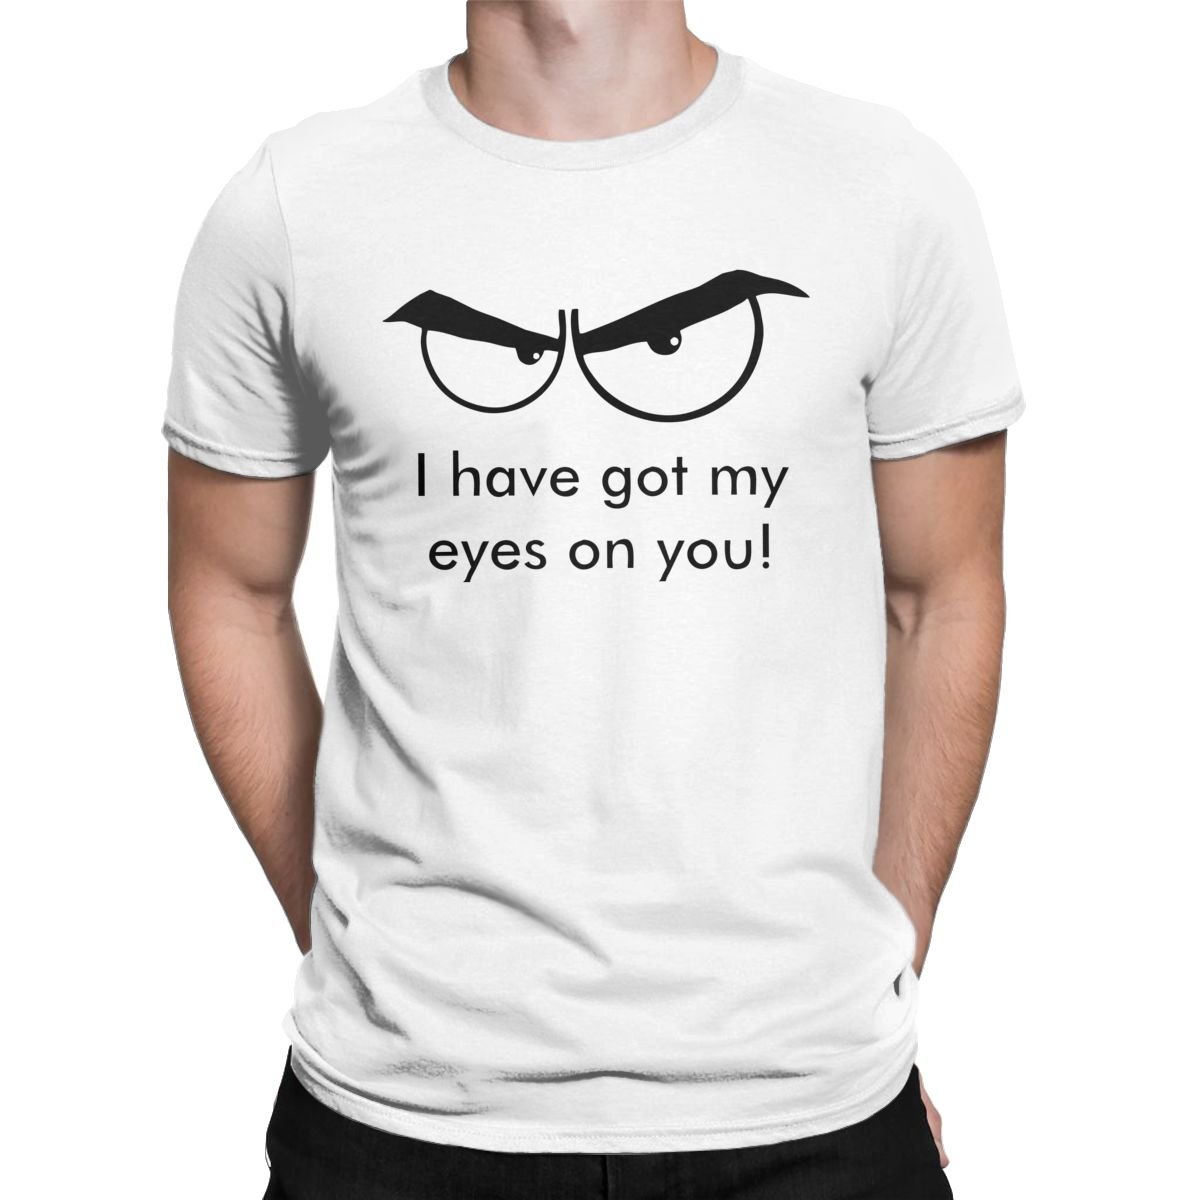 I Got My Eye On You Men T Shirt Funny <font><b>Suspicious</b></font> Novelty Tee Shirt Short Sleeve Crew Neck T-Shirt Pure Cotton Gift Idea Clothes image